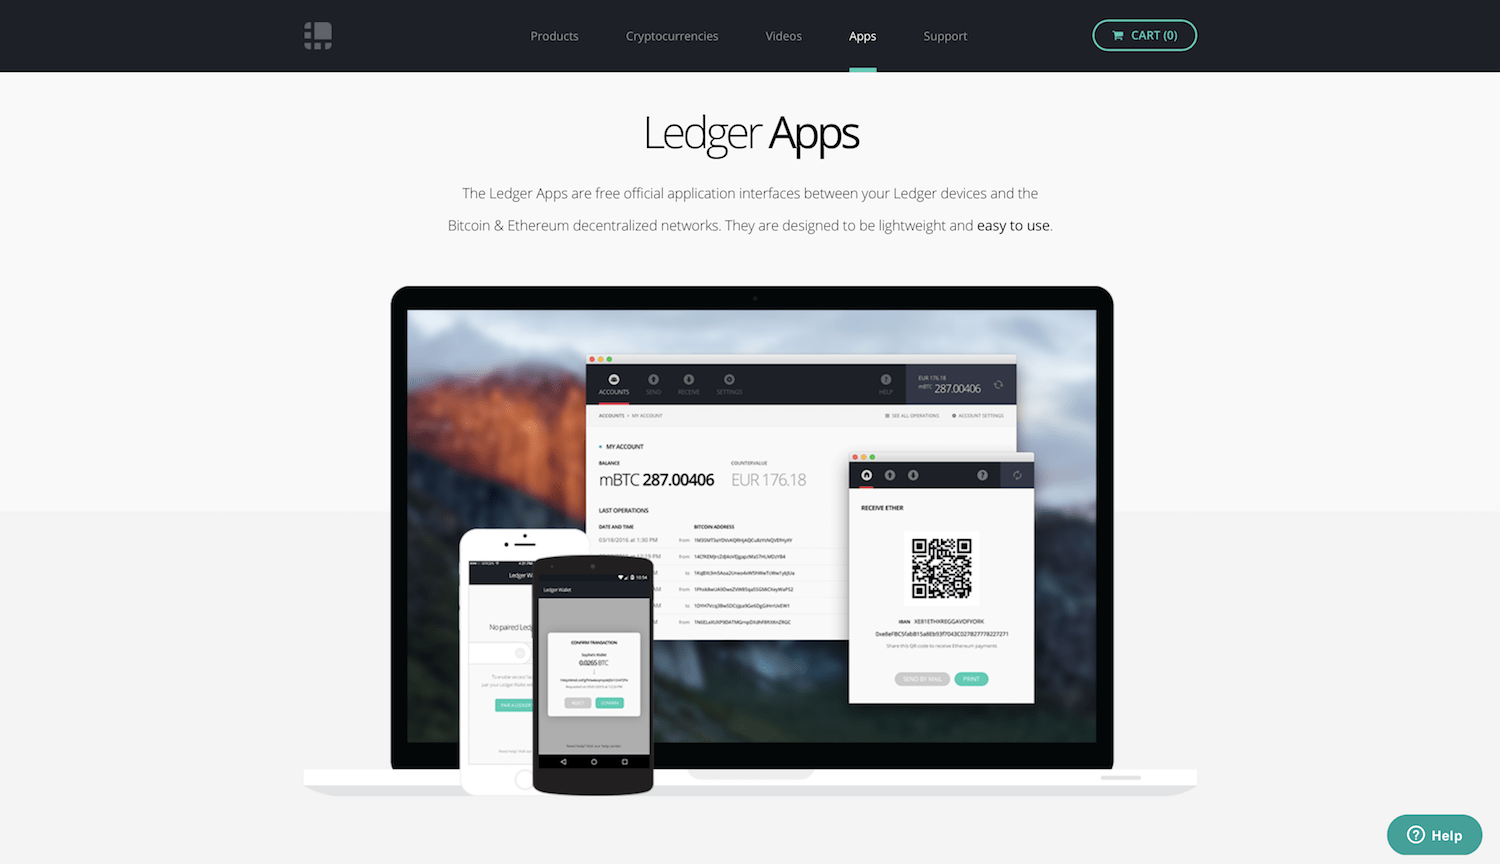 Ledger apps screenshot